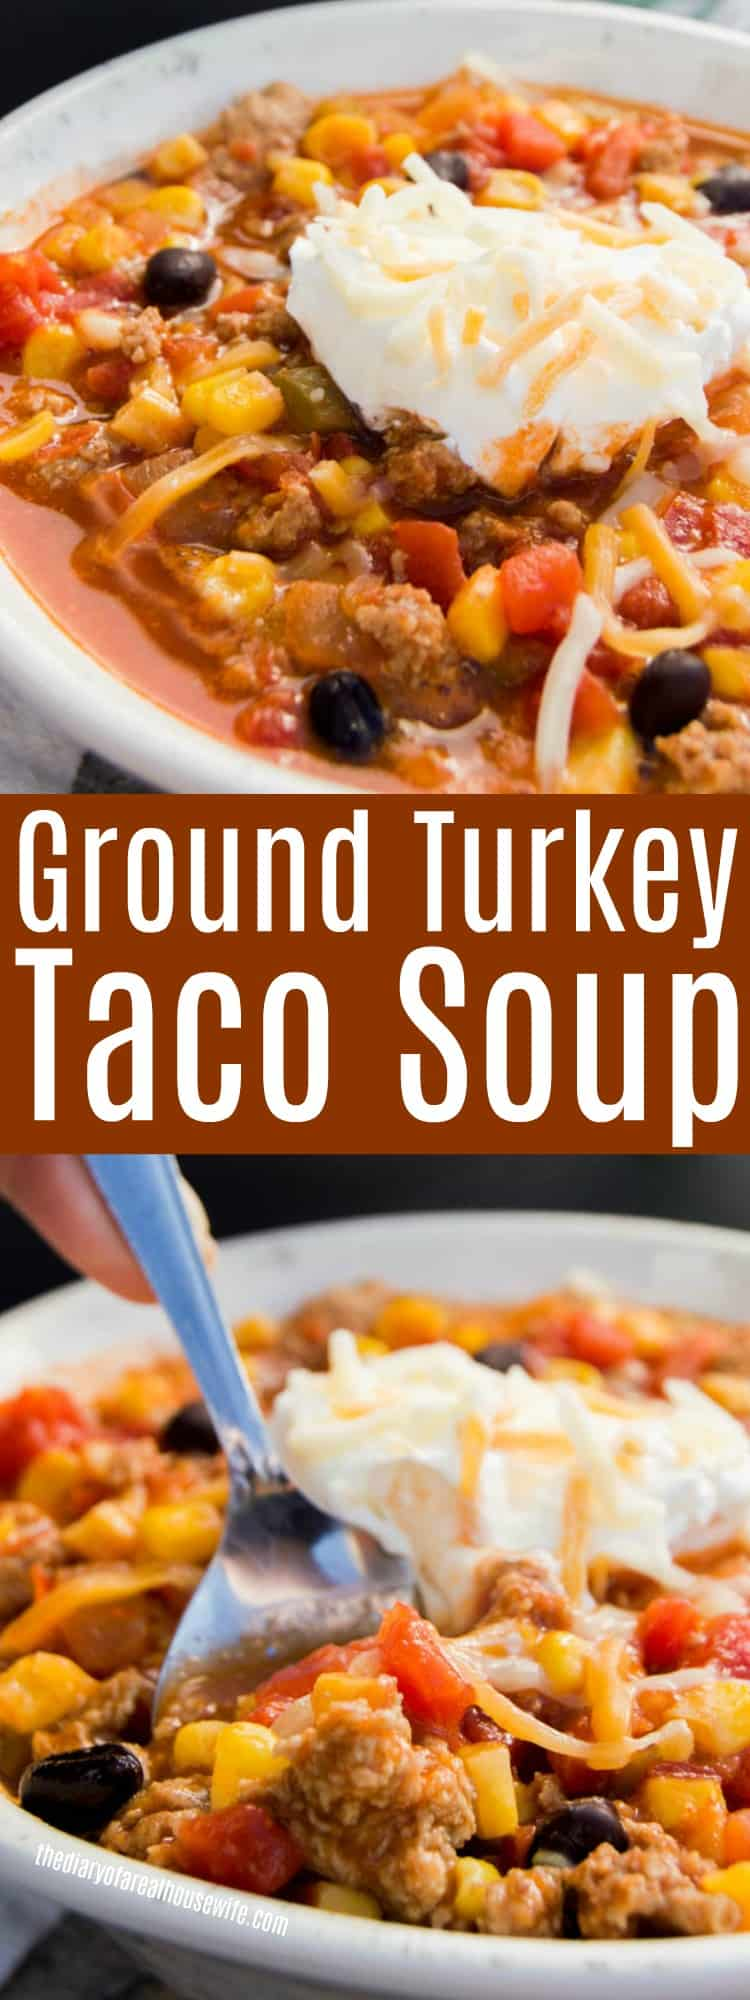 Ground Turkey Taco Soup